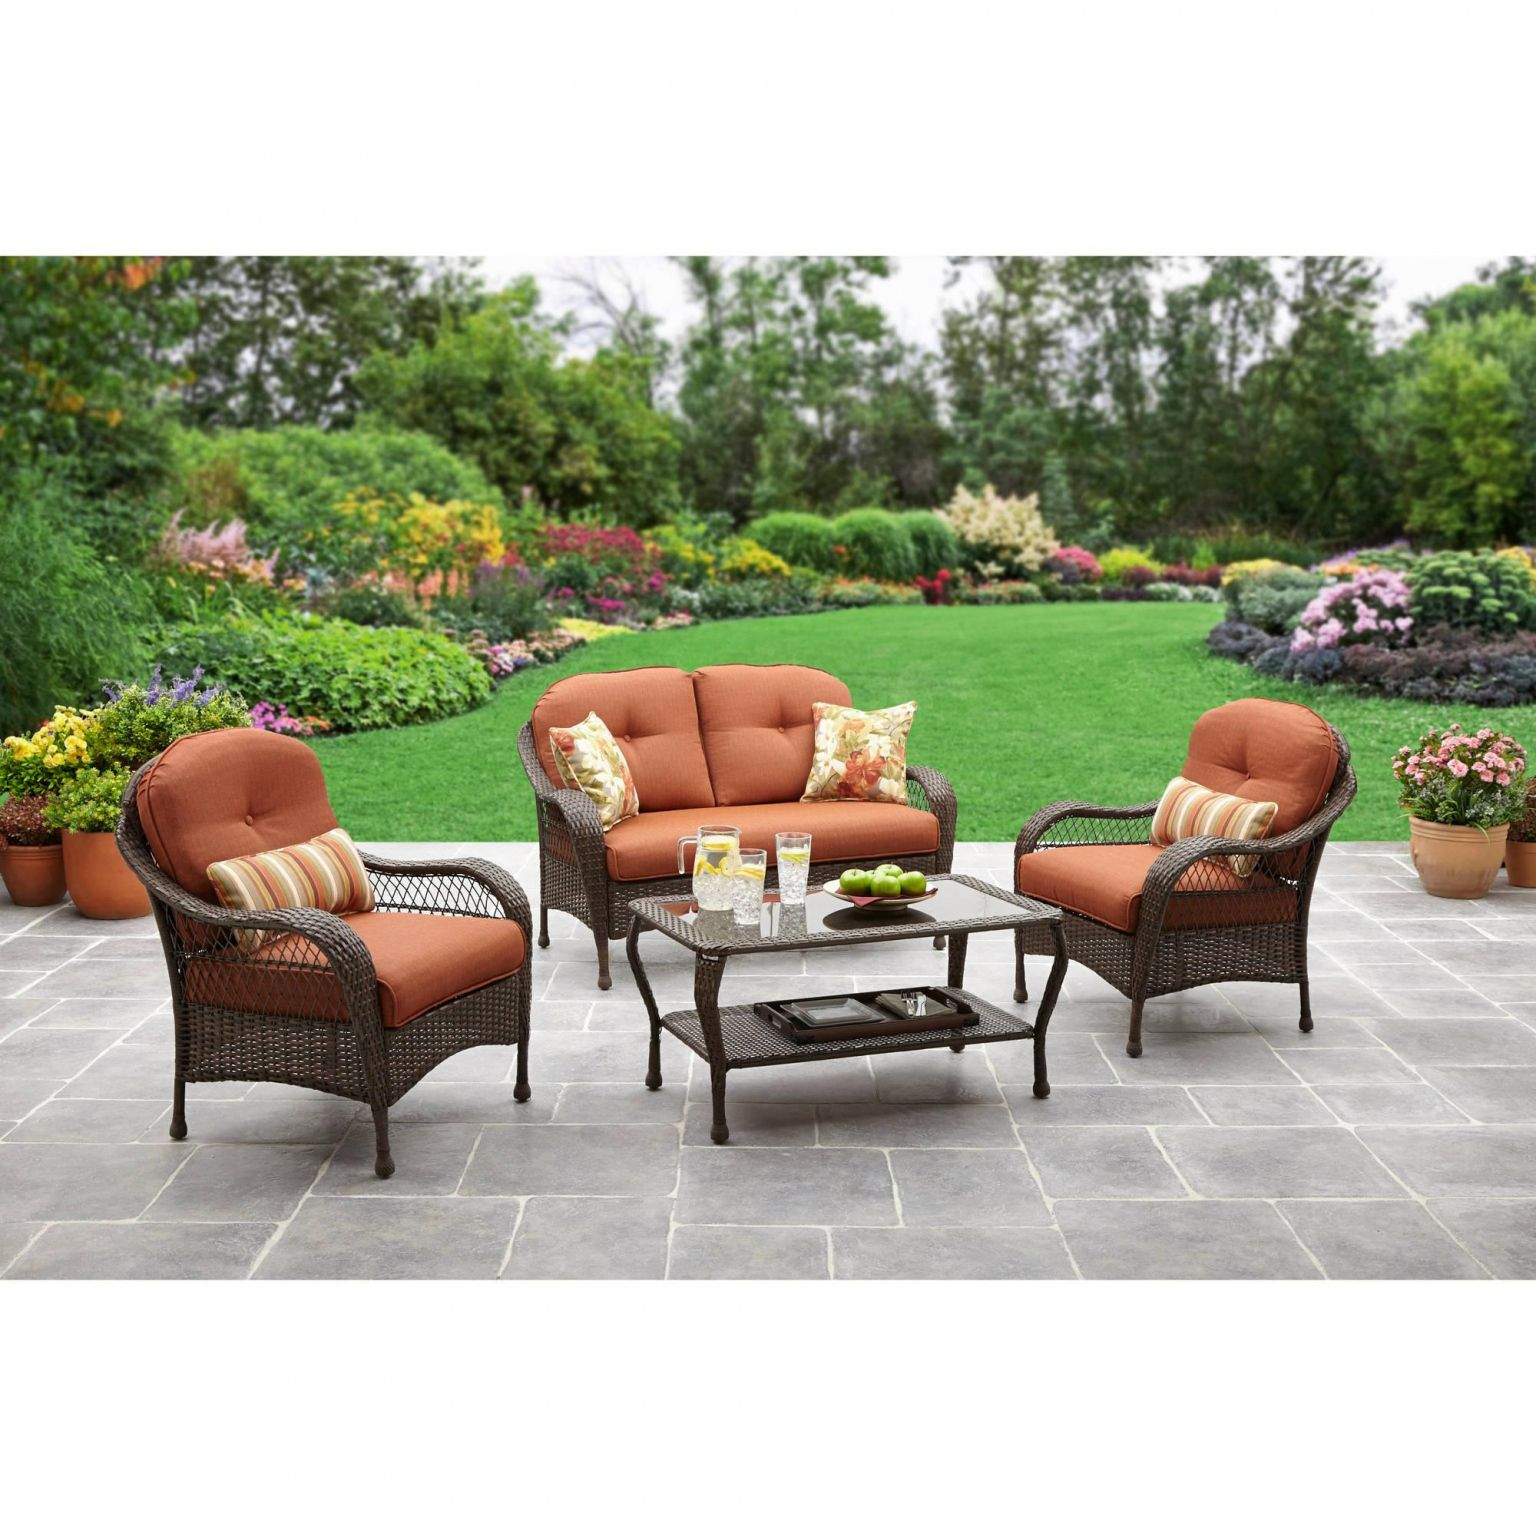 20 Replacement Cushions for Outdoor Furniture Walmart Popular